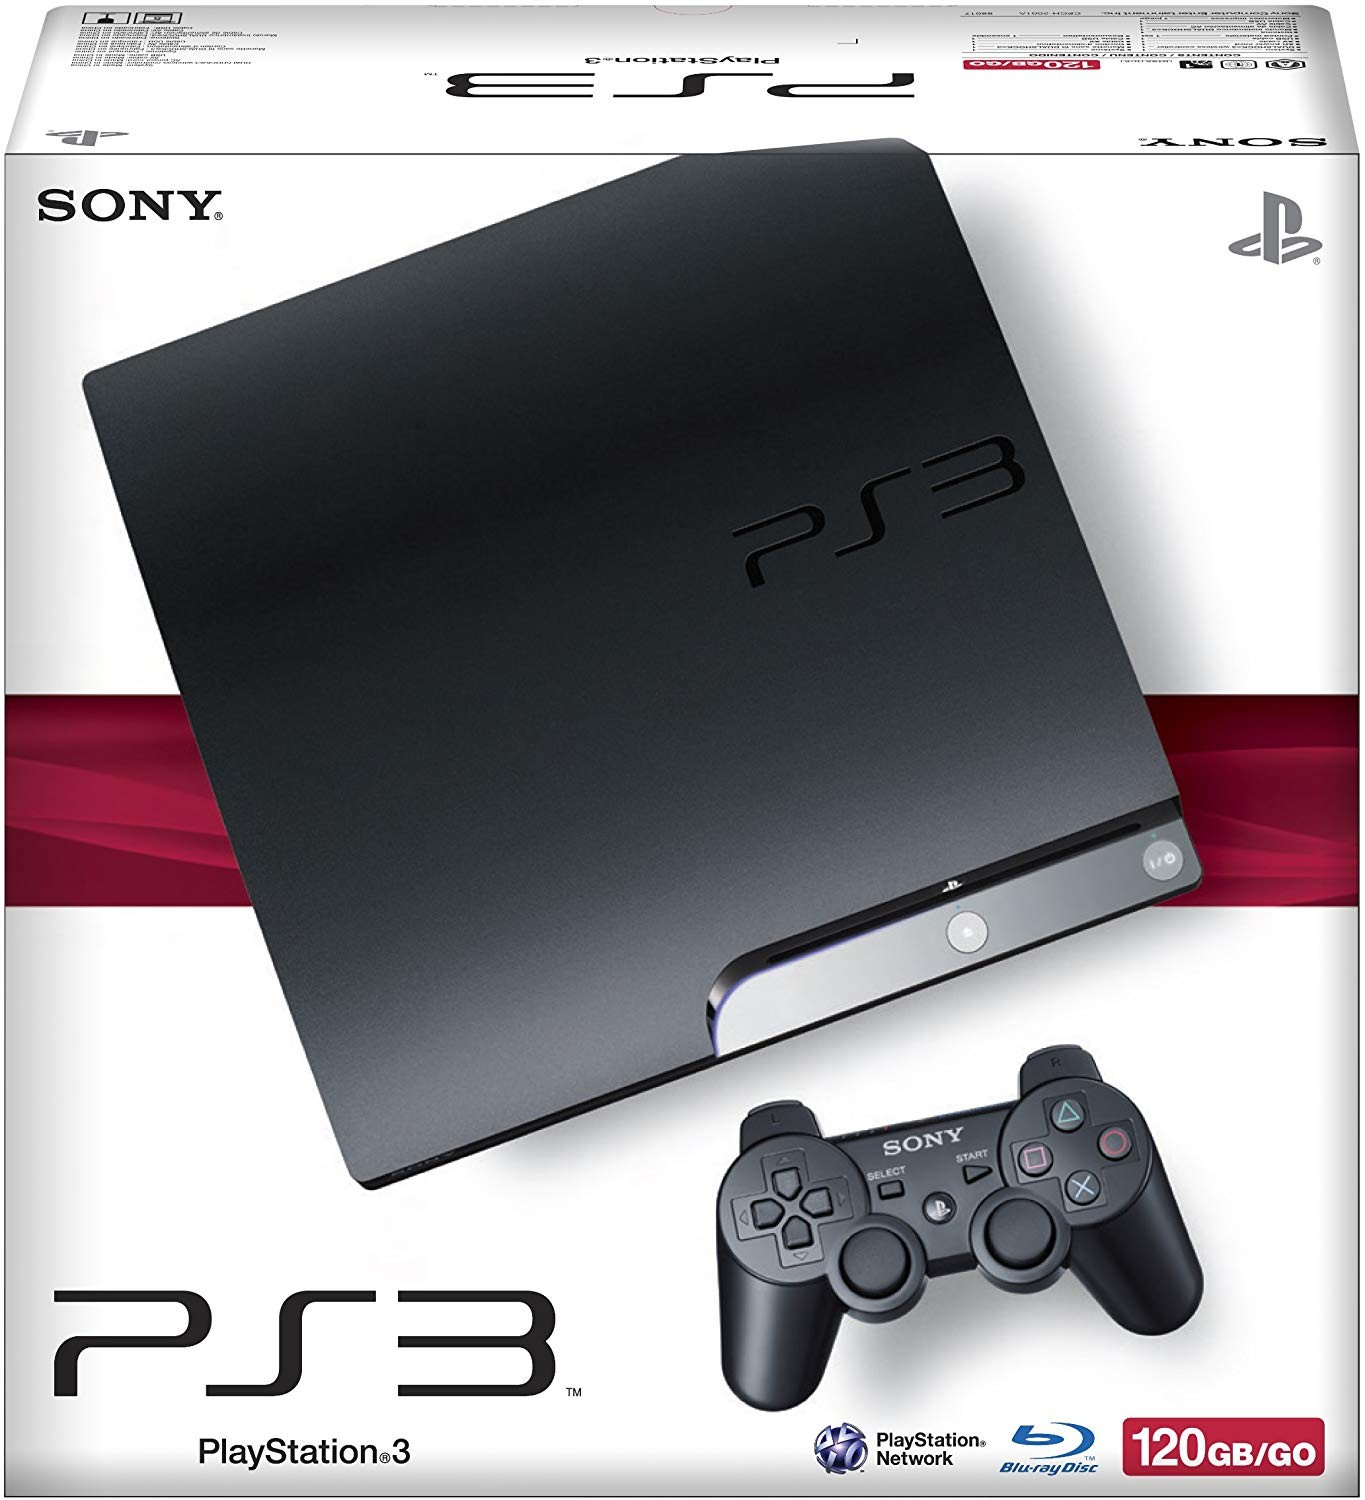 Sony PlayStation 3 Slim 120GB | PS3 Slim б/у